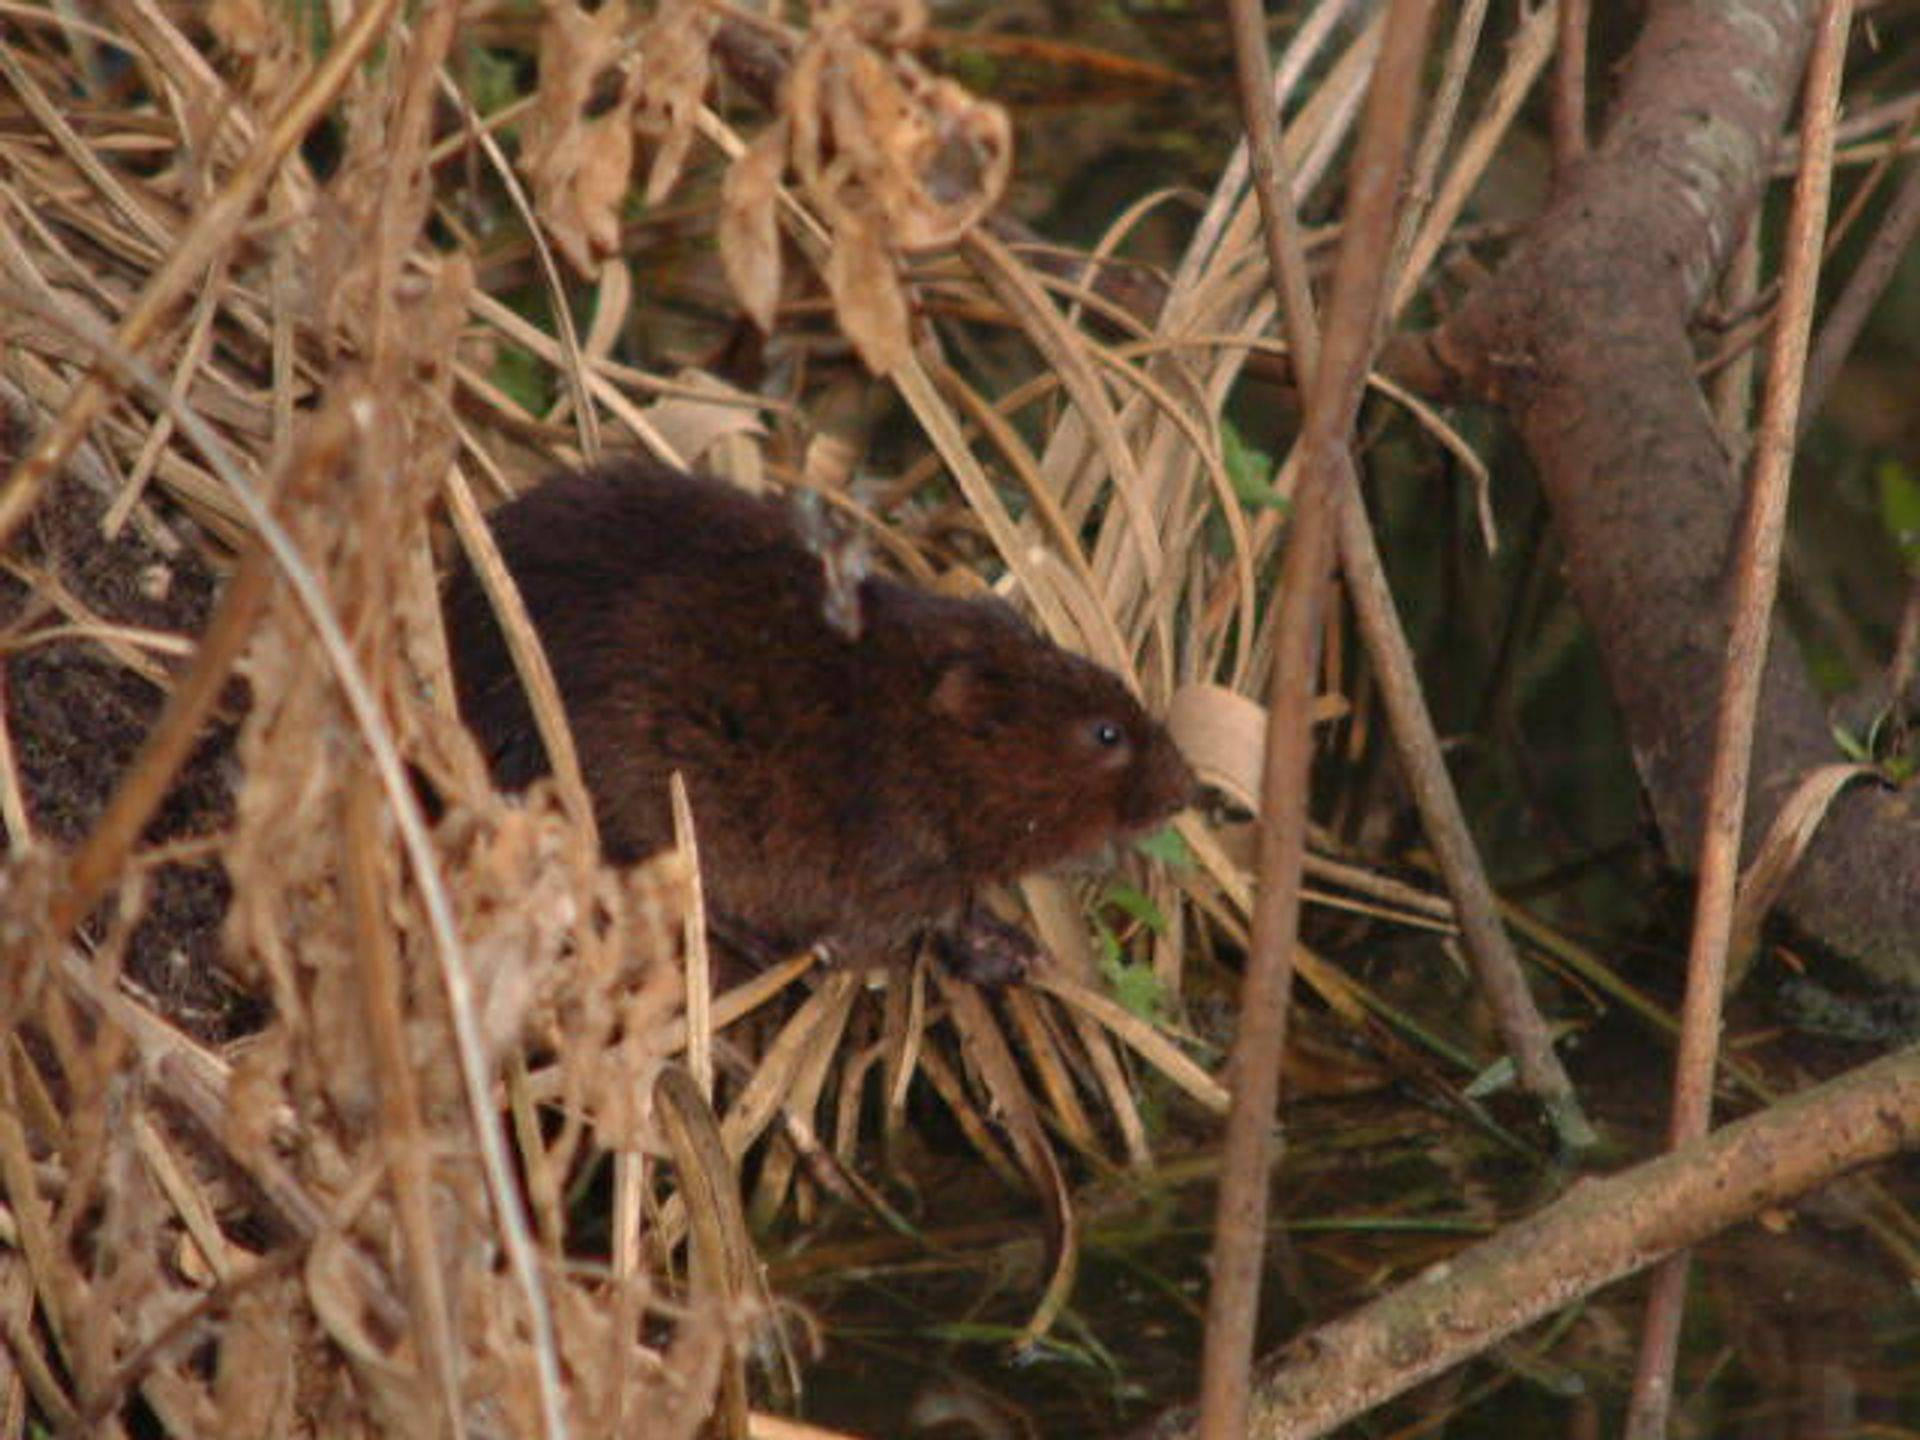 Not a rat but a water vole